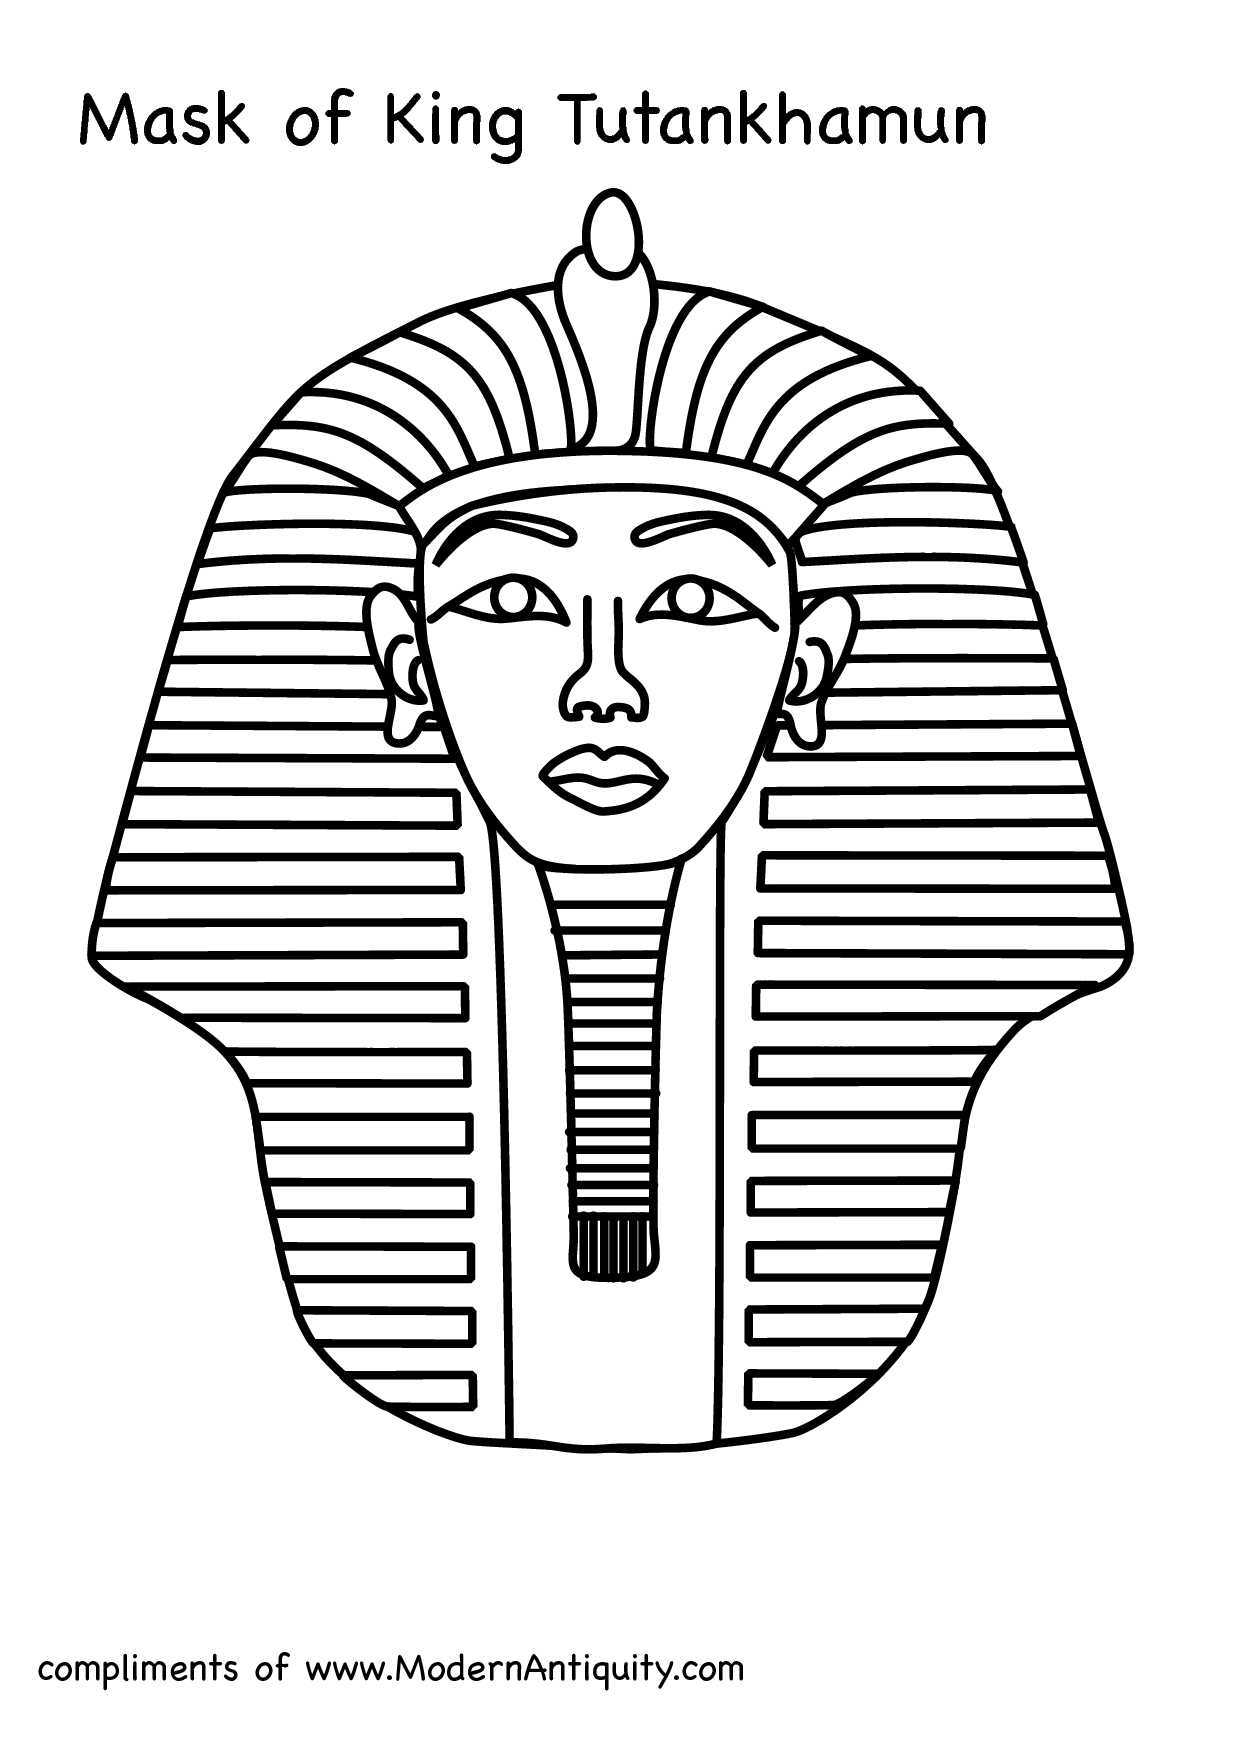 King Tut Coloring Page Outline coloring page, coloring image.